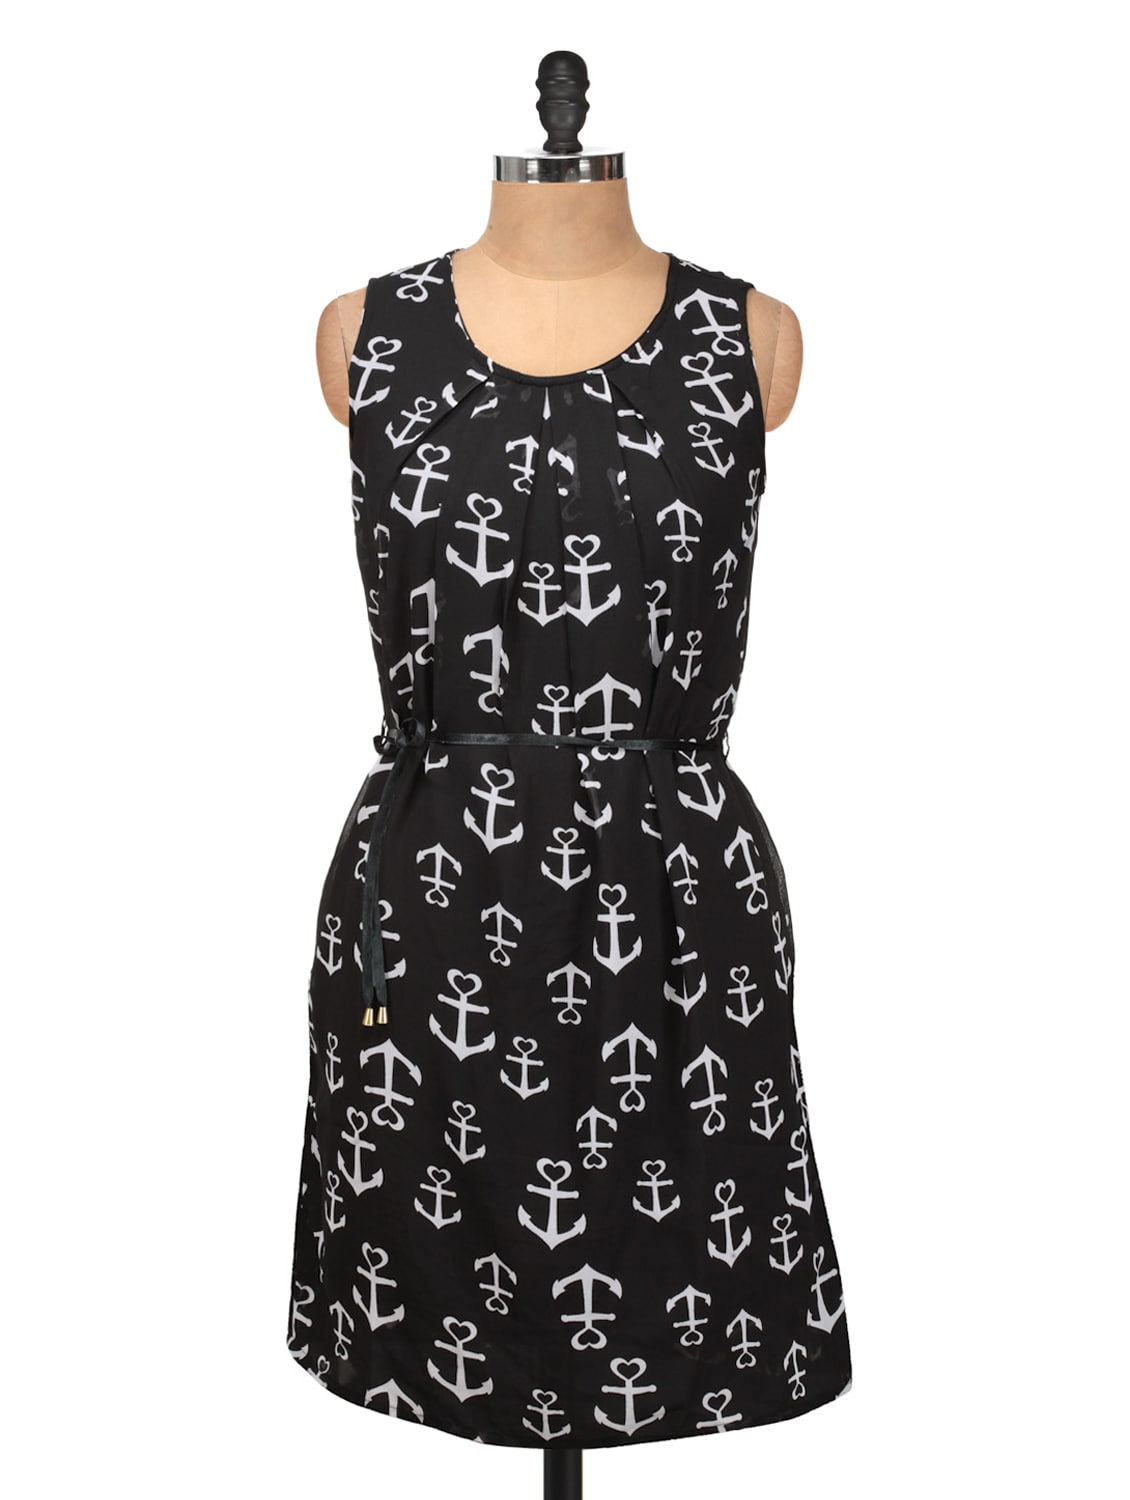 Black And White Anchor Print Dress - Silk Weavers